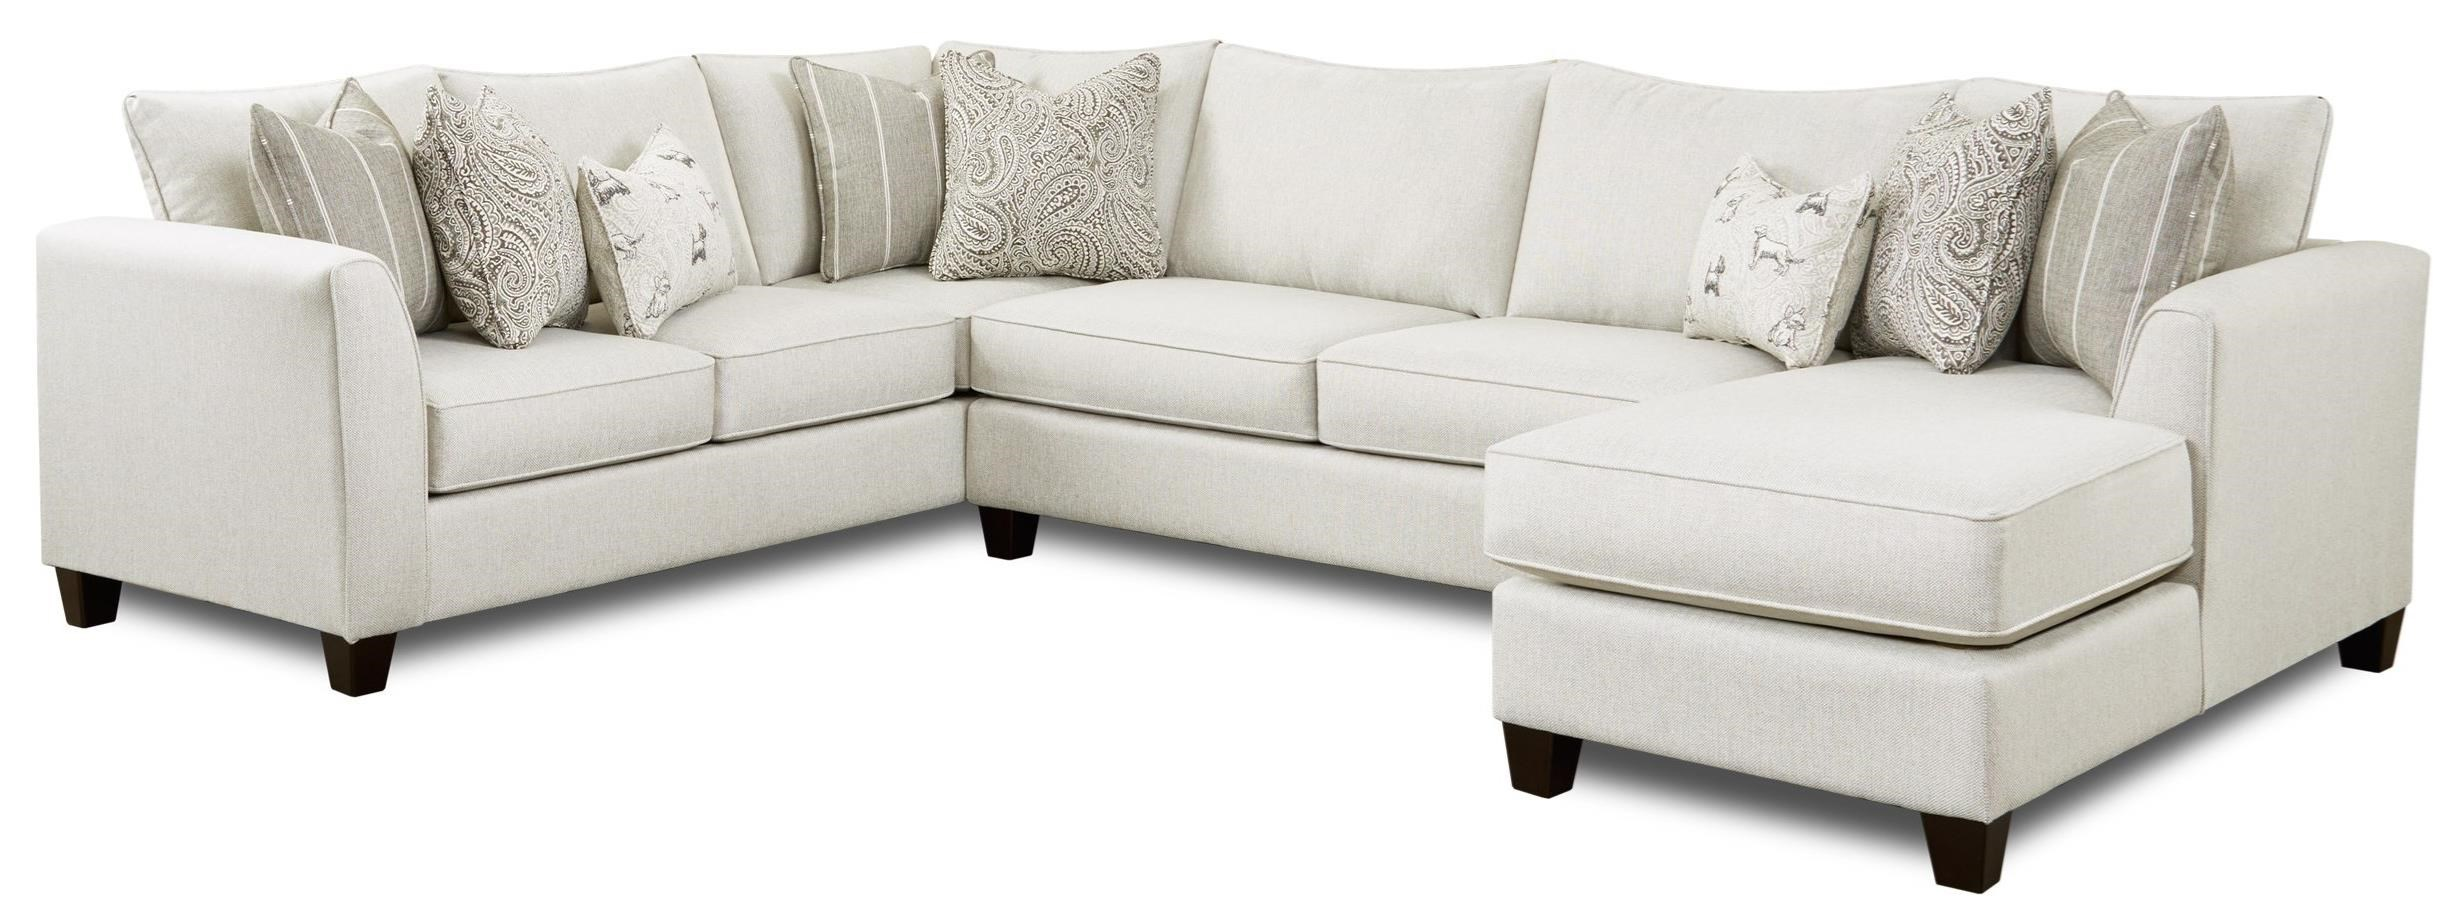 28 3-Piece Sectional with Chaise by Fusion Furniture at Lindy's Furniture Company